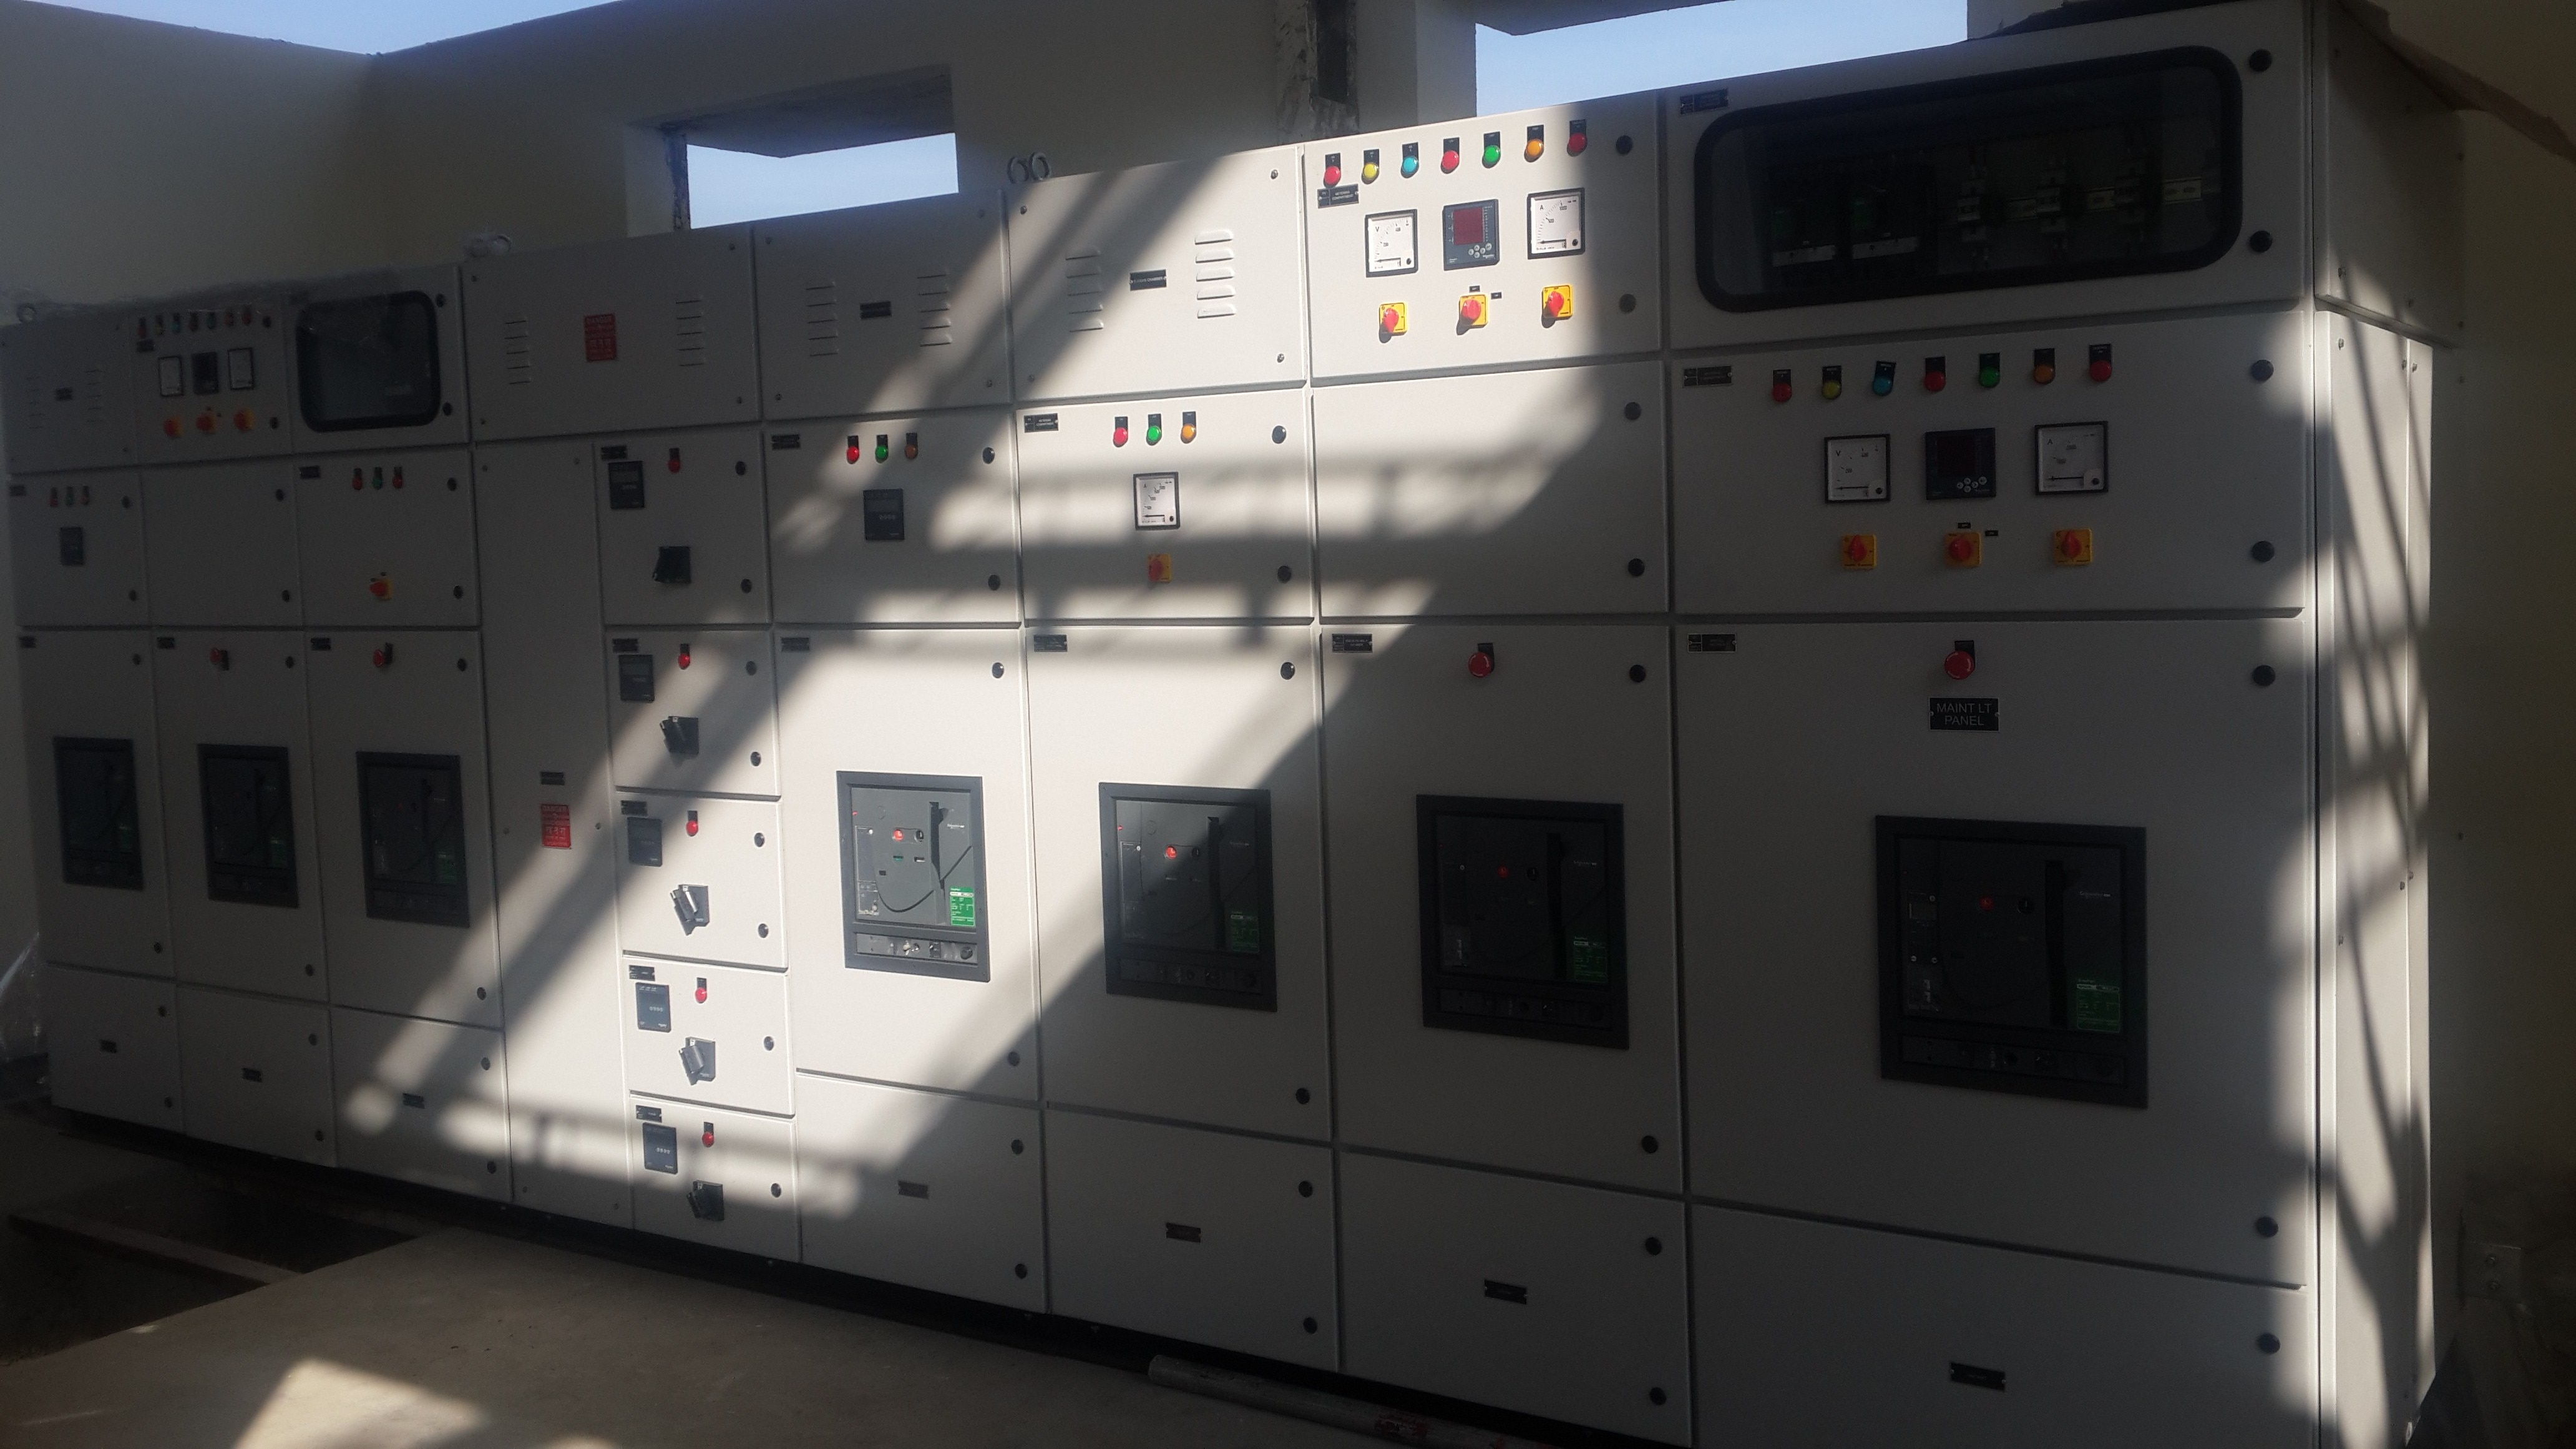 GVL Electro Controls design & manufacture AMF Panels comprising of ACB's, Motorised MCCB's, Power Contactors for various Industries, Hospitals etc.